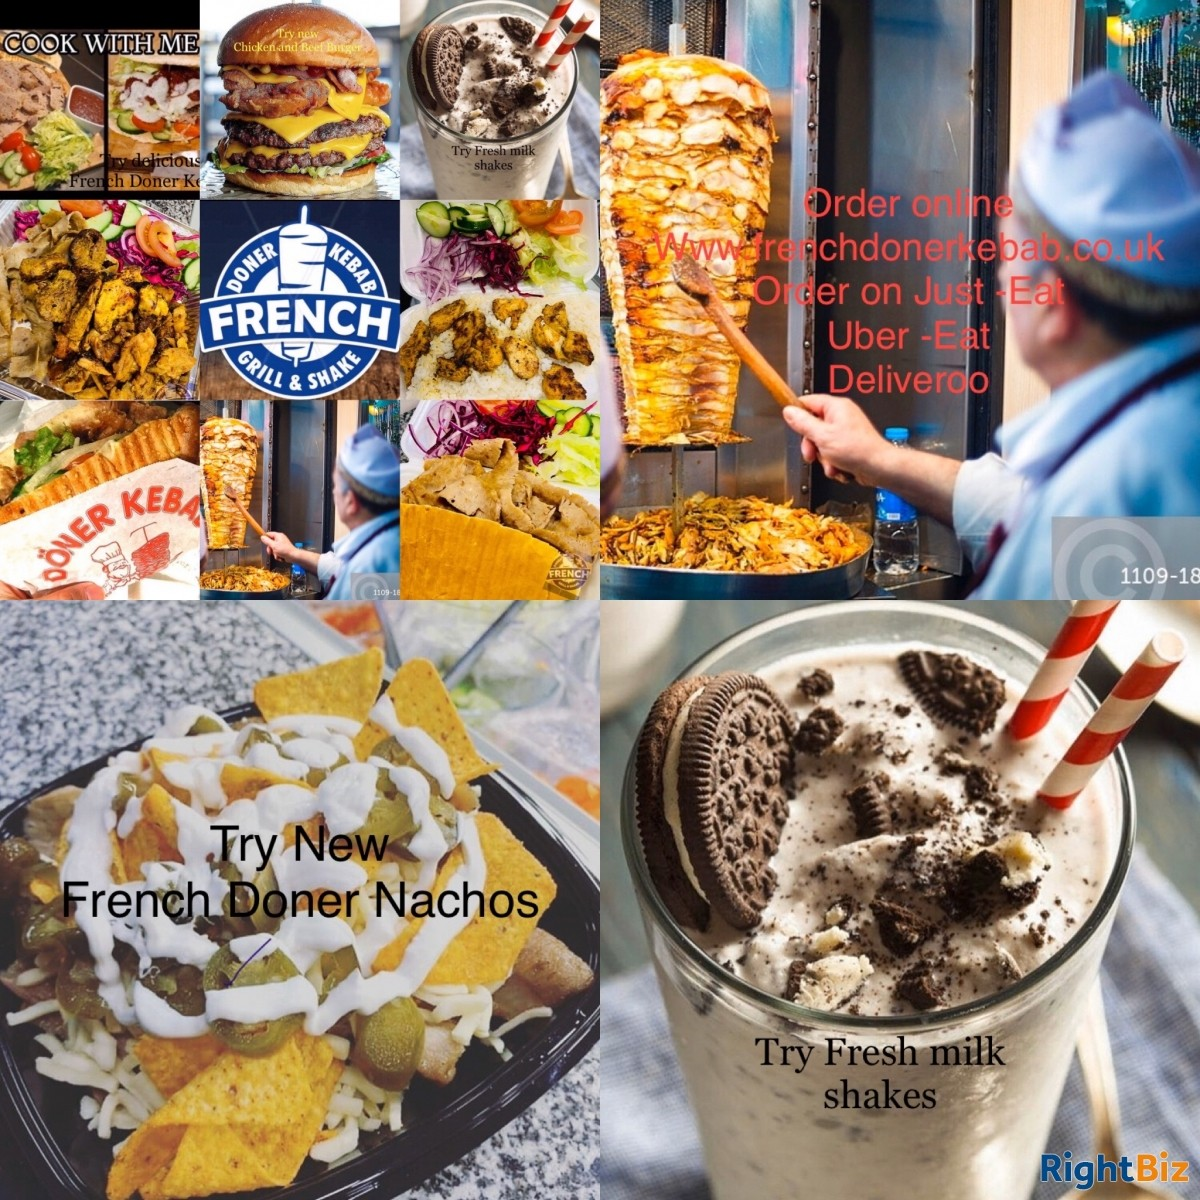 French Doner Kebab Shake and Grill - Image 3